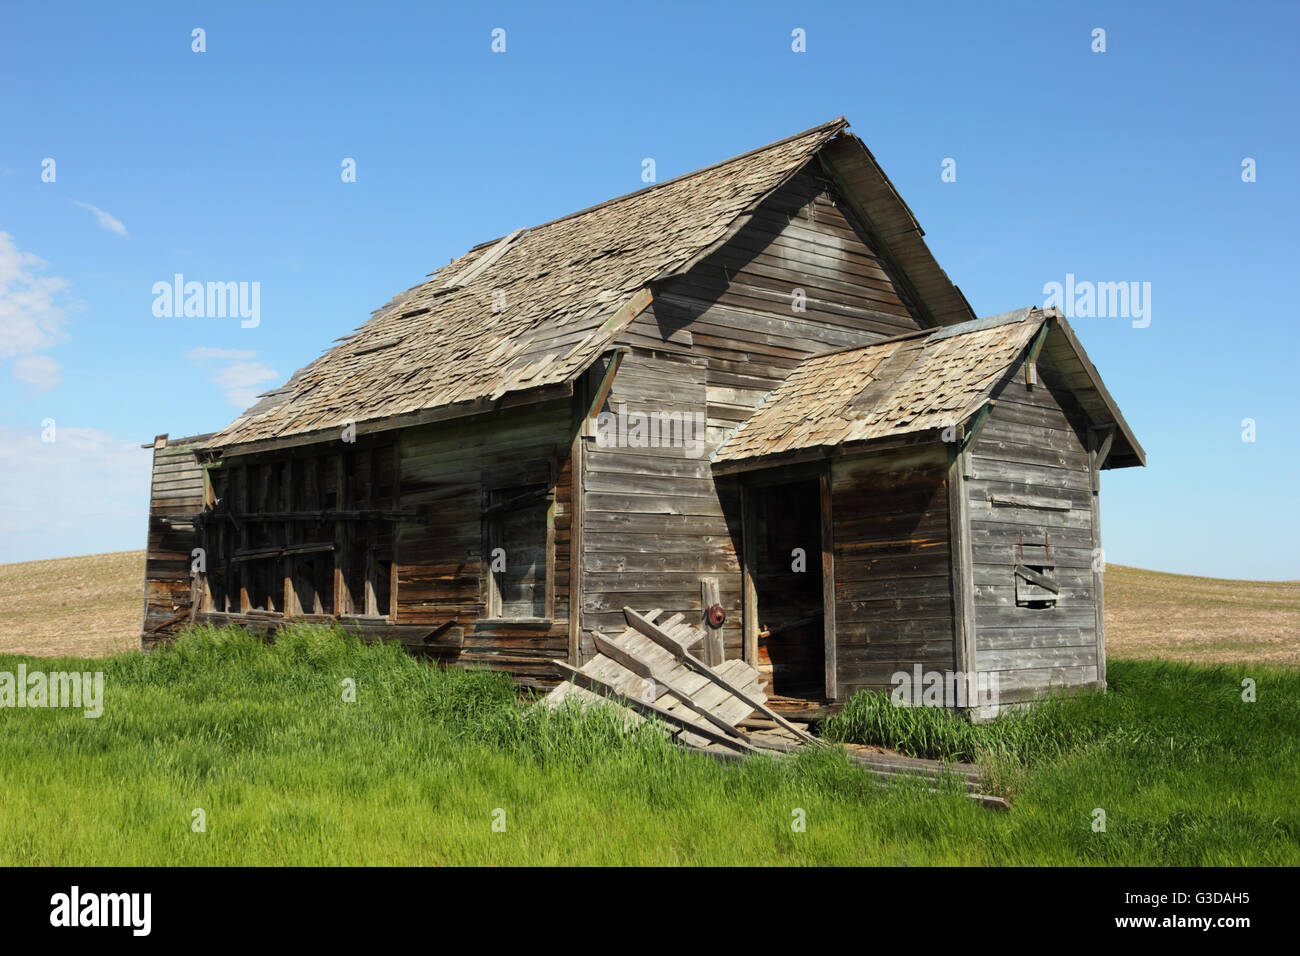 On Room Schoolhouse Stock Photos & On Room Schoolhouse Stock Images